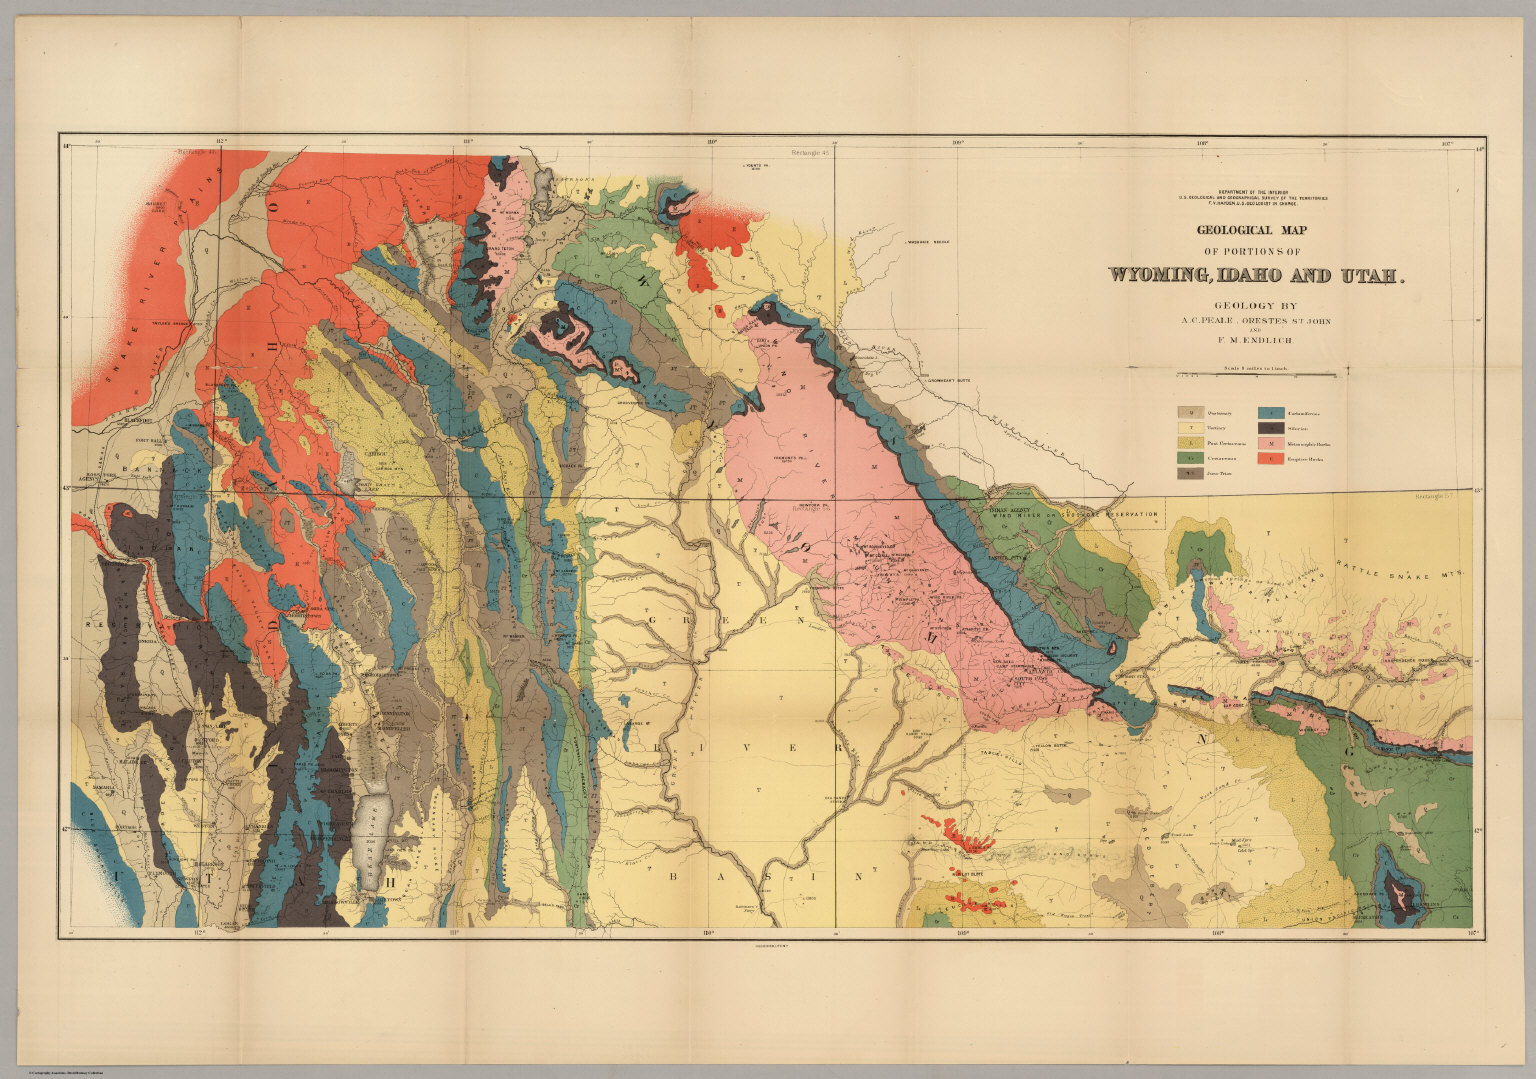 Utah And Idaho Map.Geological Map Of Portions Of Wyoming Idaho And Utah David Rumsey